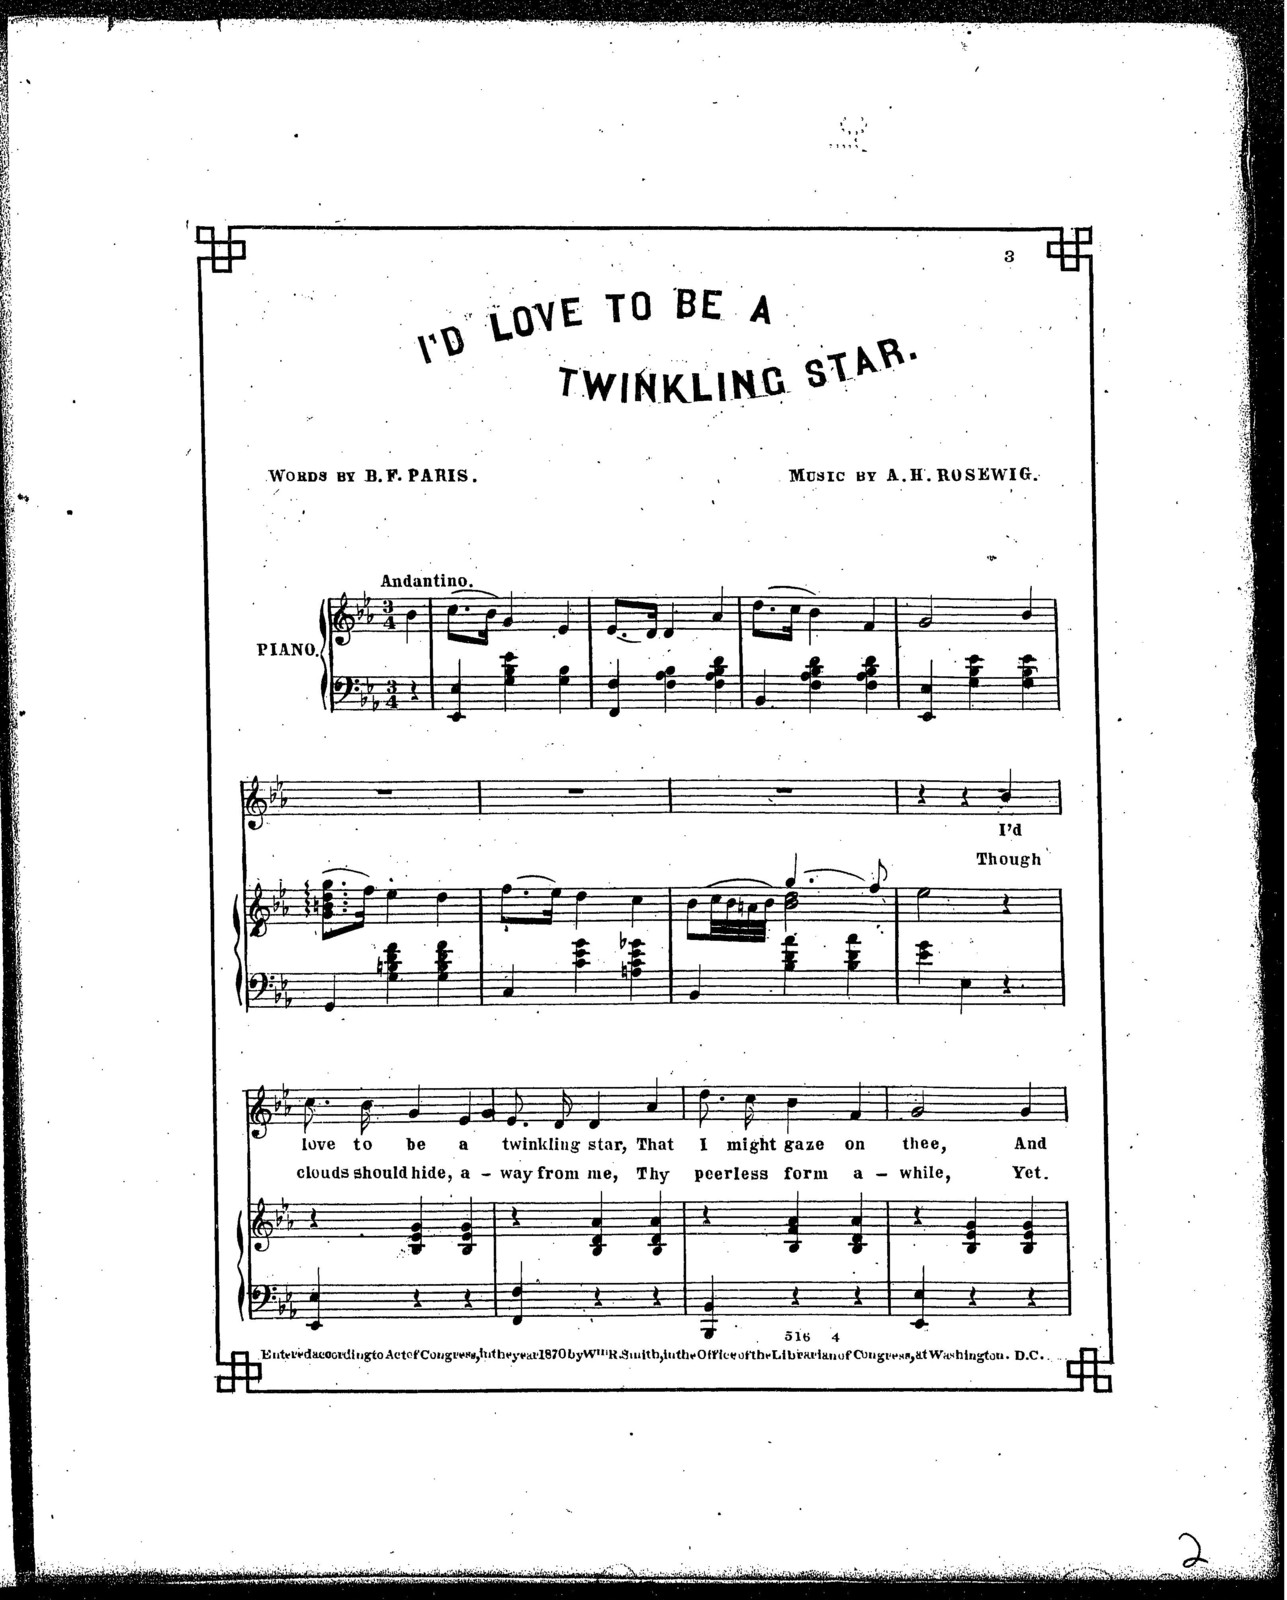 I'd love to be a twinkling star